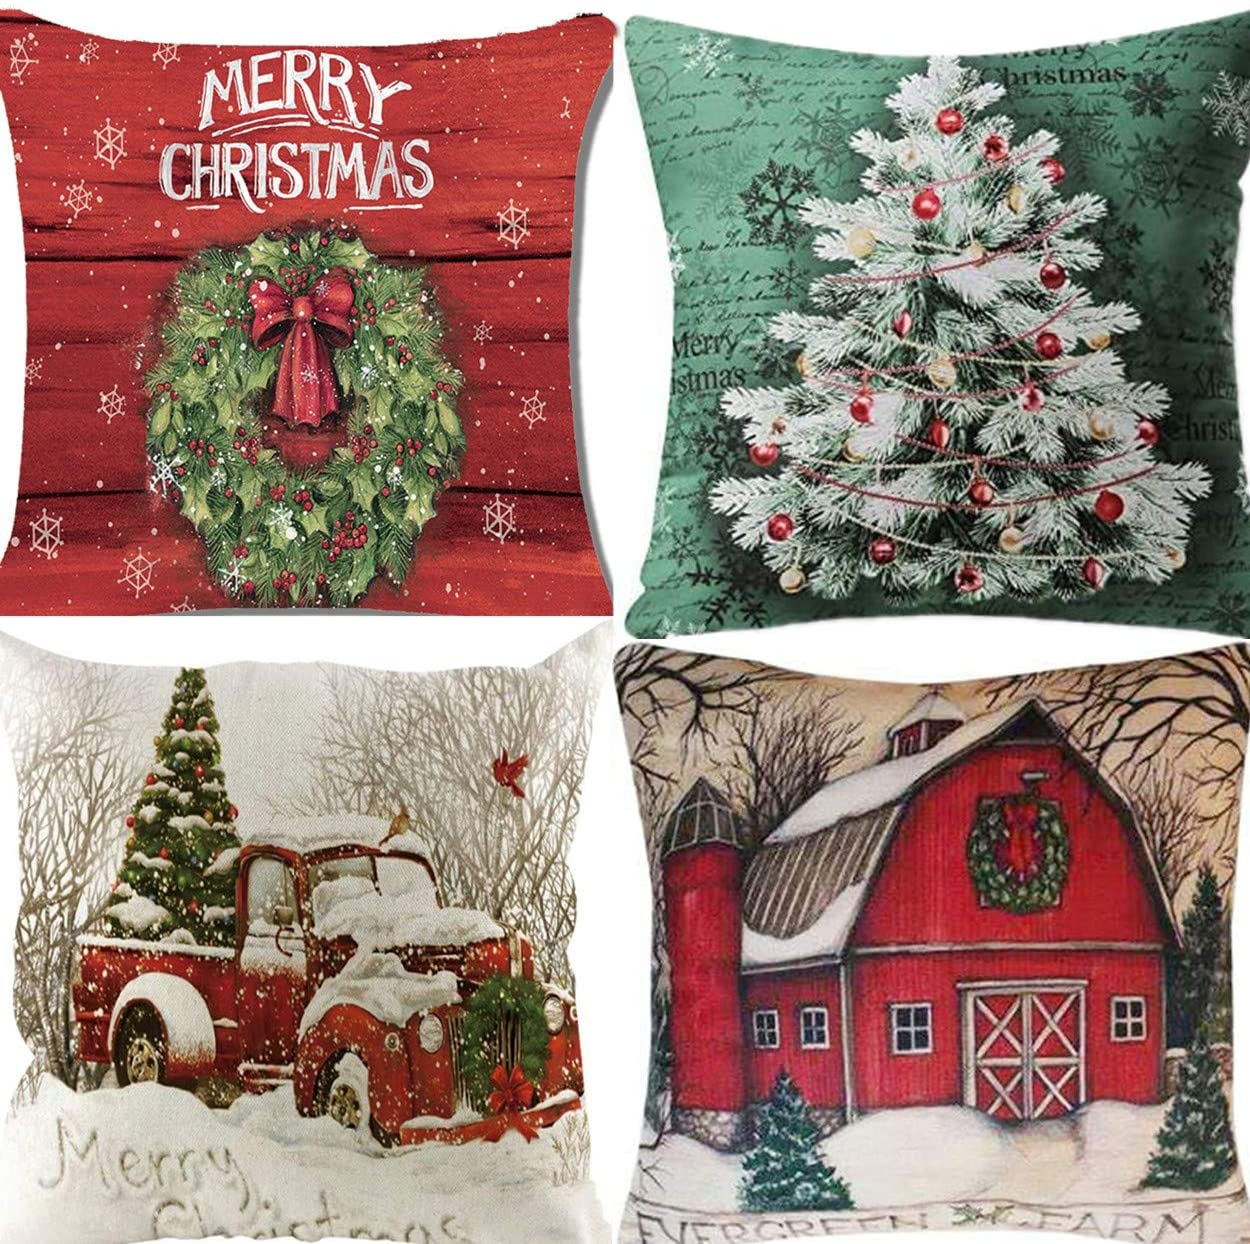 Unibedding Merry Christmas and Christmas Tree Pillows Covers for Christmas Decor Winter Truck Pillow Case Set of 4 Christmas Decoration Cotton Linen Cushion Covers 18 x18